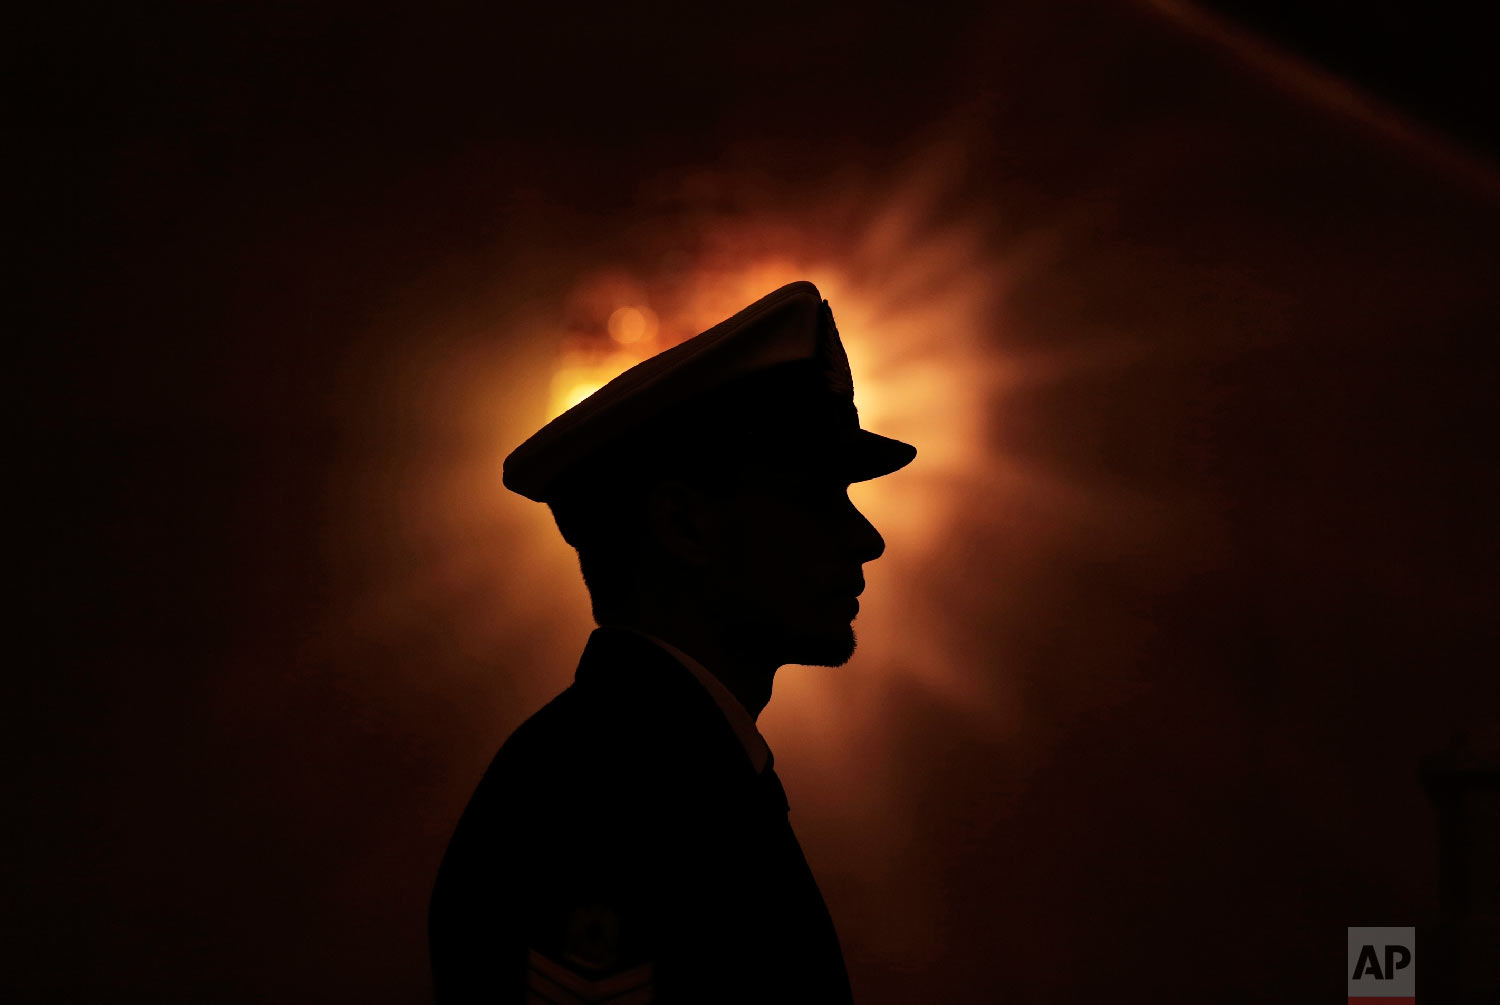 A Libyan honor guard stands at attention during the arrival of U.N. Special Envoy to Libya Bernardino Leon in Tripoli, Thursday, Jan. 9, 2015. (AP Photo/Mohamed Ben Khalifa)